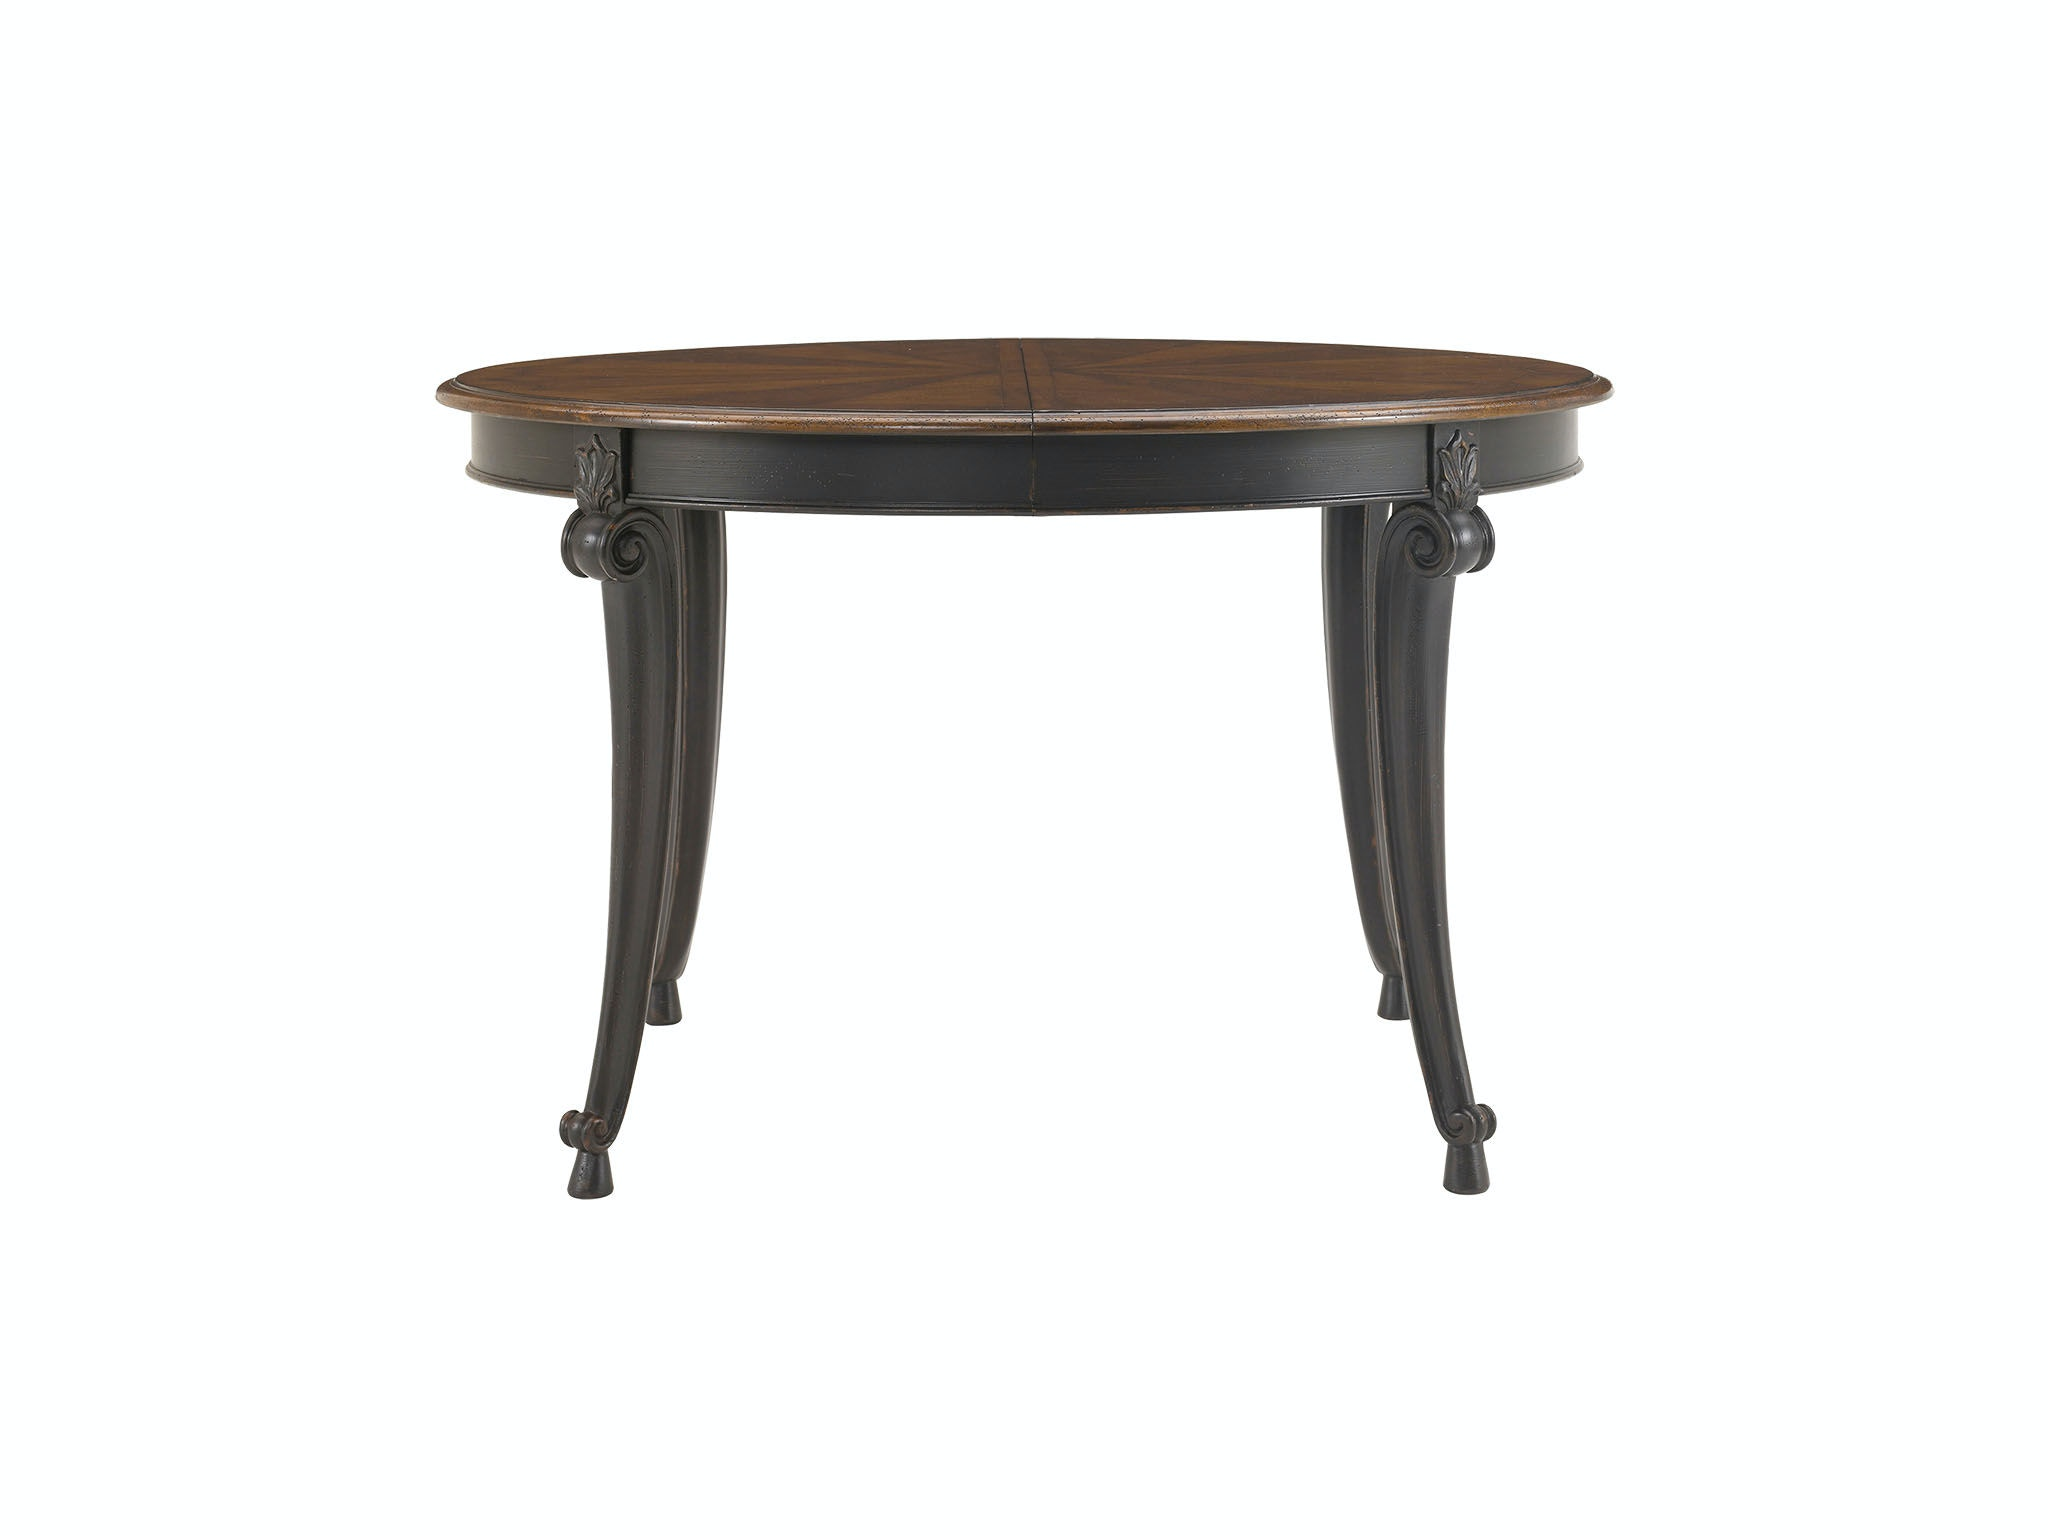 Drexel Dining Room Table Ronde   Round Table